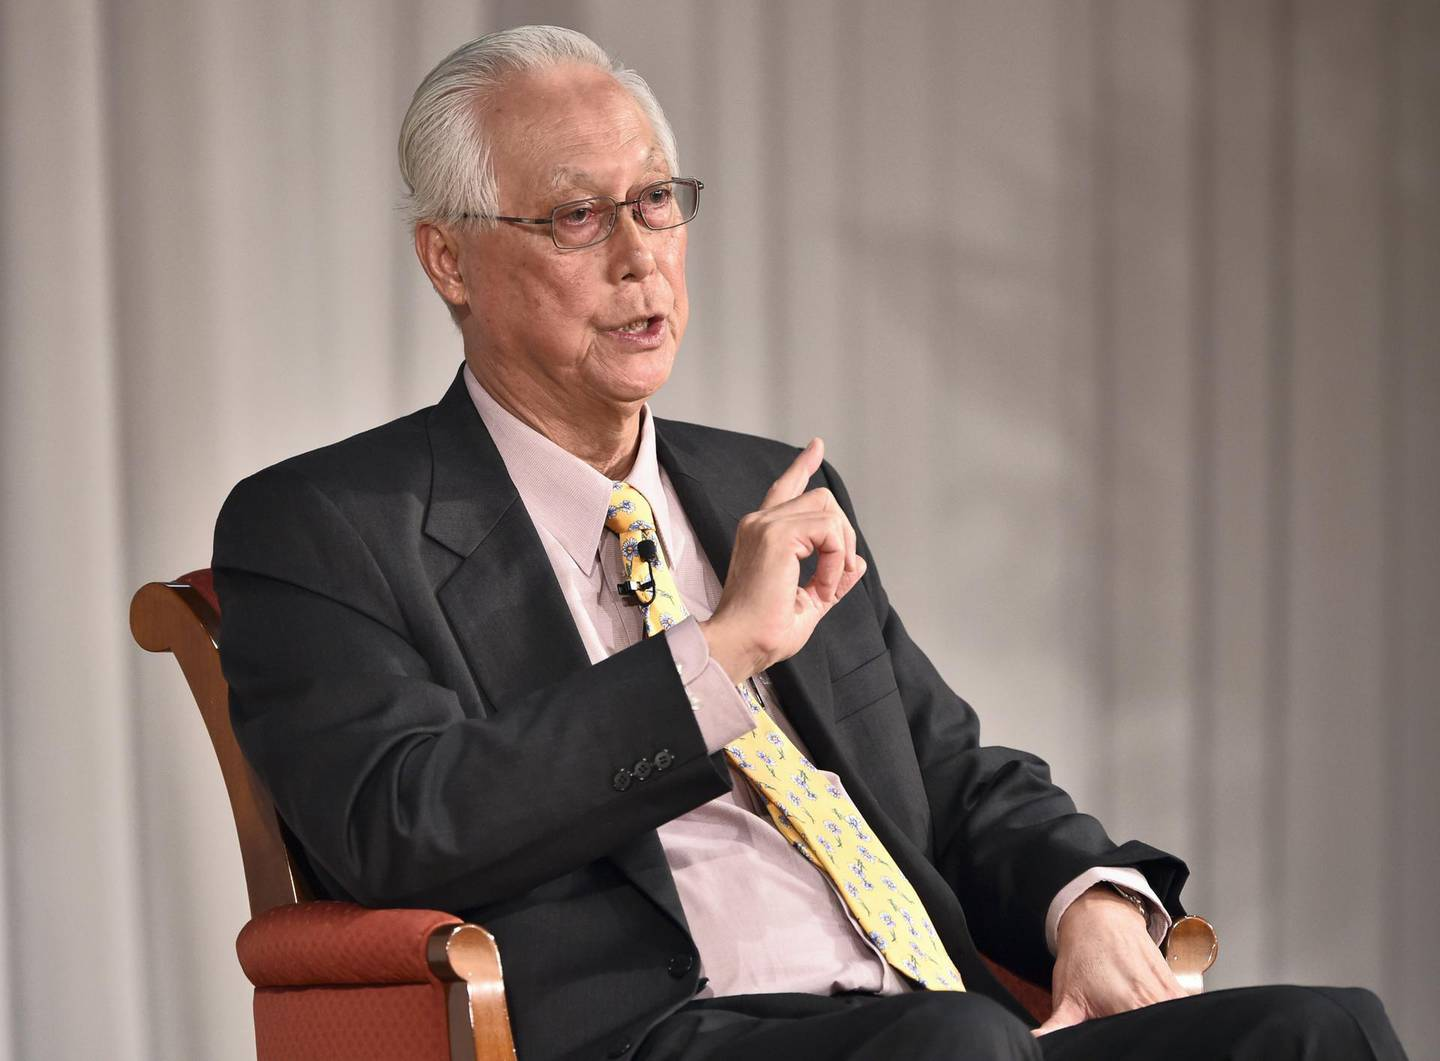 """Singapore's Emeritus Senior Minister and former prime minister Goh Chok Tong answers questions after his keynote speech at the 21st International  Conference of The Future of Asia at a hotel in Tokyo on May 21, 2015. The conference entitled """"Asia Beyond 2015: The Quest for Lasting Peace and Prosperity"""" is held until May 22.   AFP PHOTO / KAZUHIRO NOGI (Photo by KAZUHIRO NOGI / AFP)"""